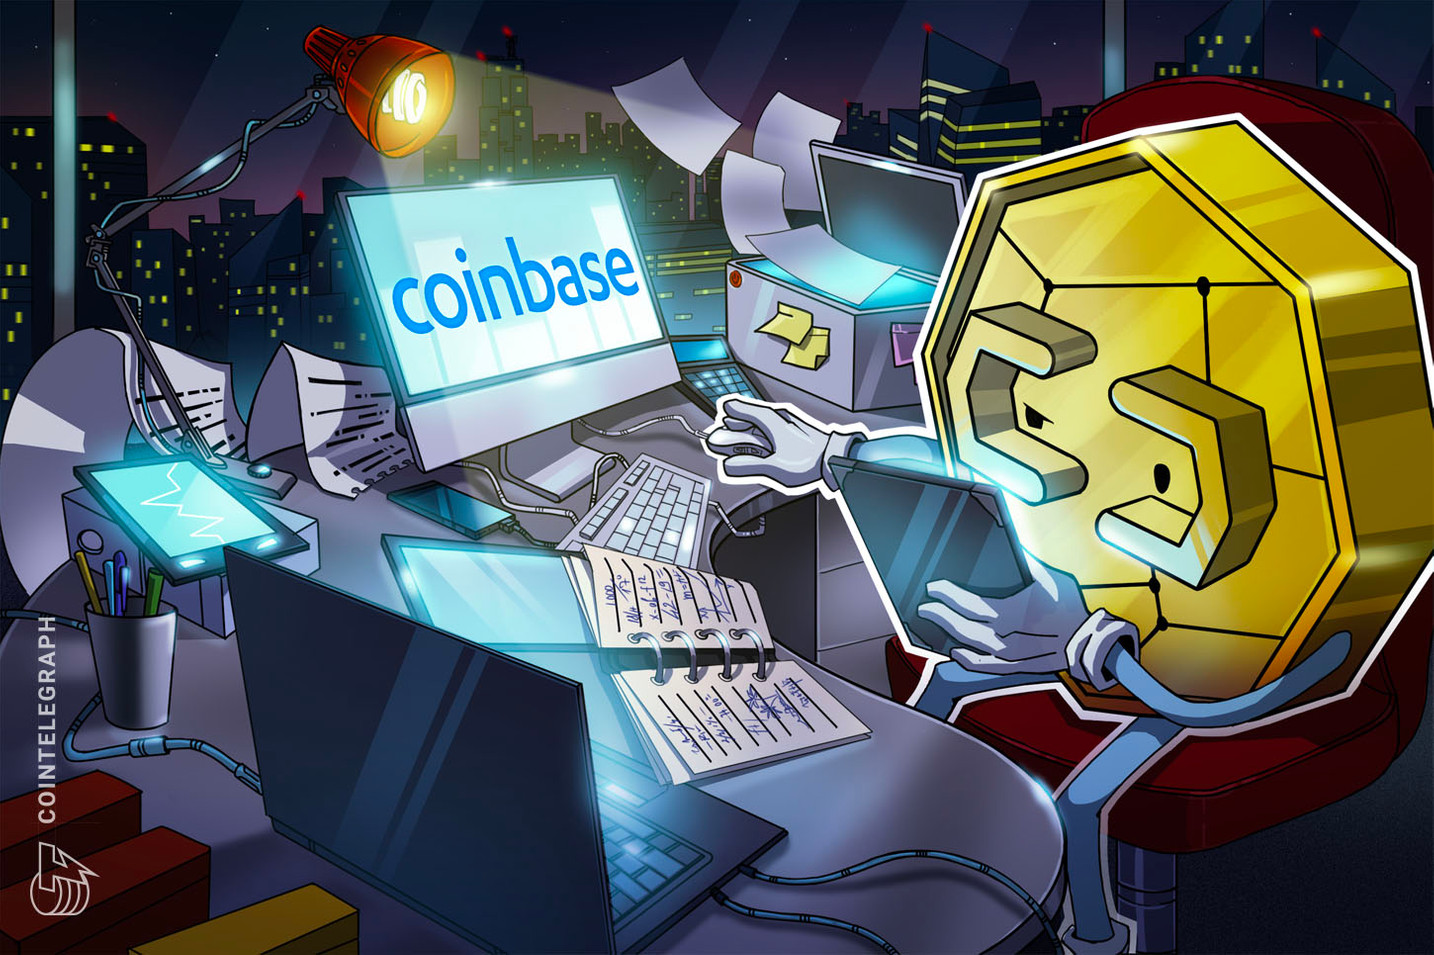 Fact check: Has Coinbase launched a decentralized fact checking portal?